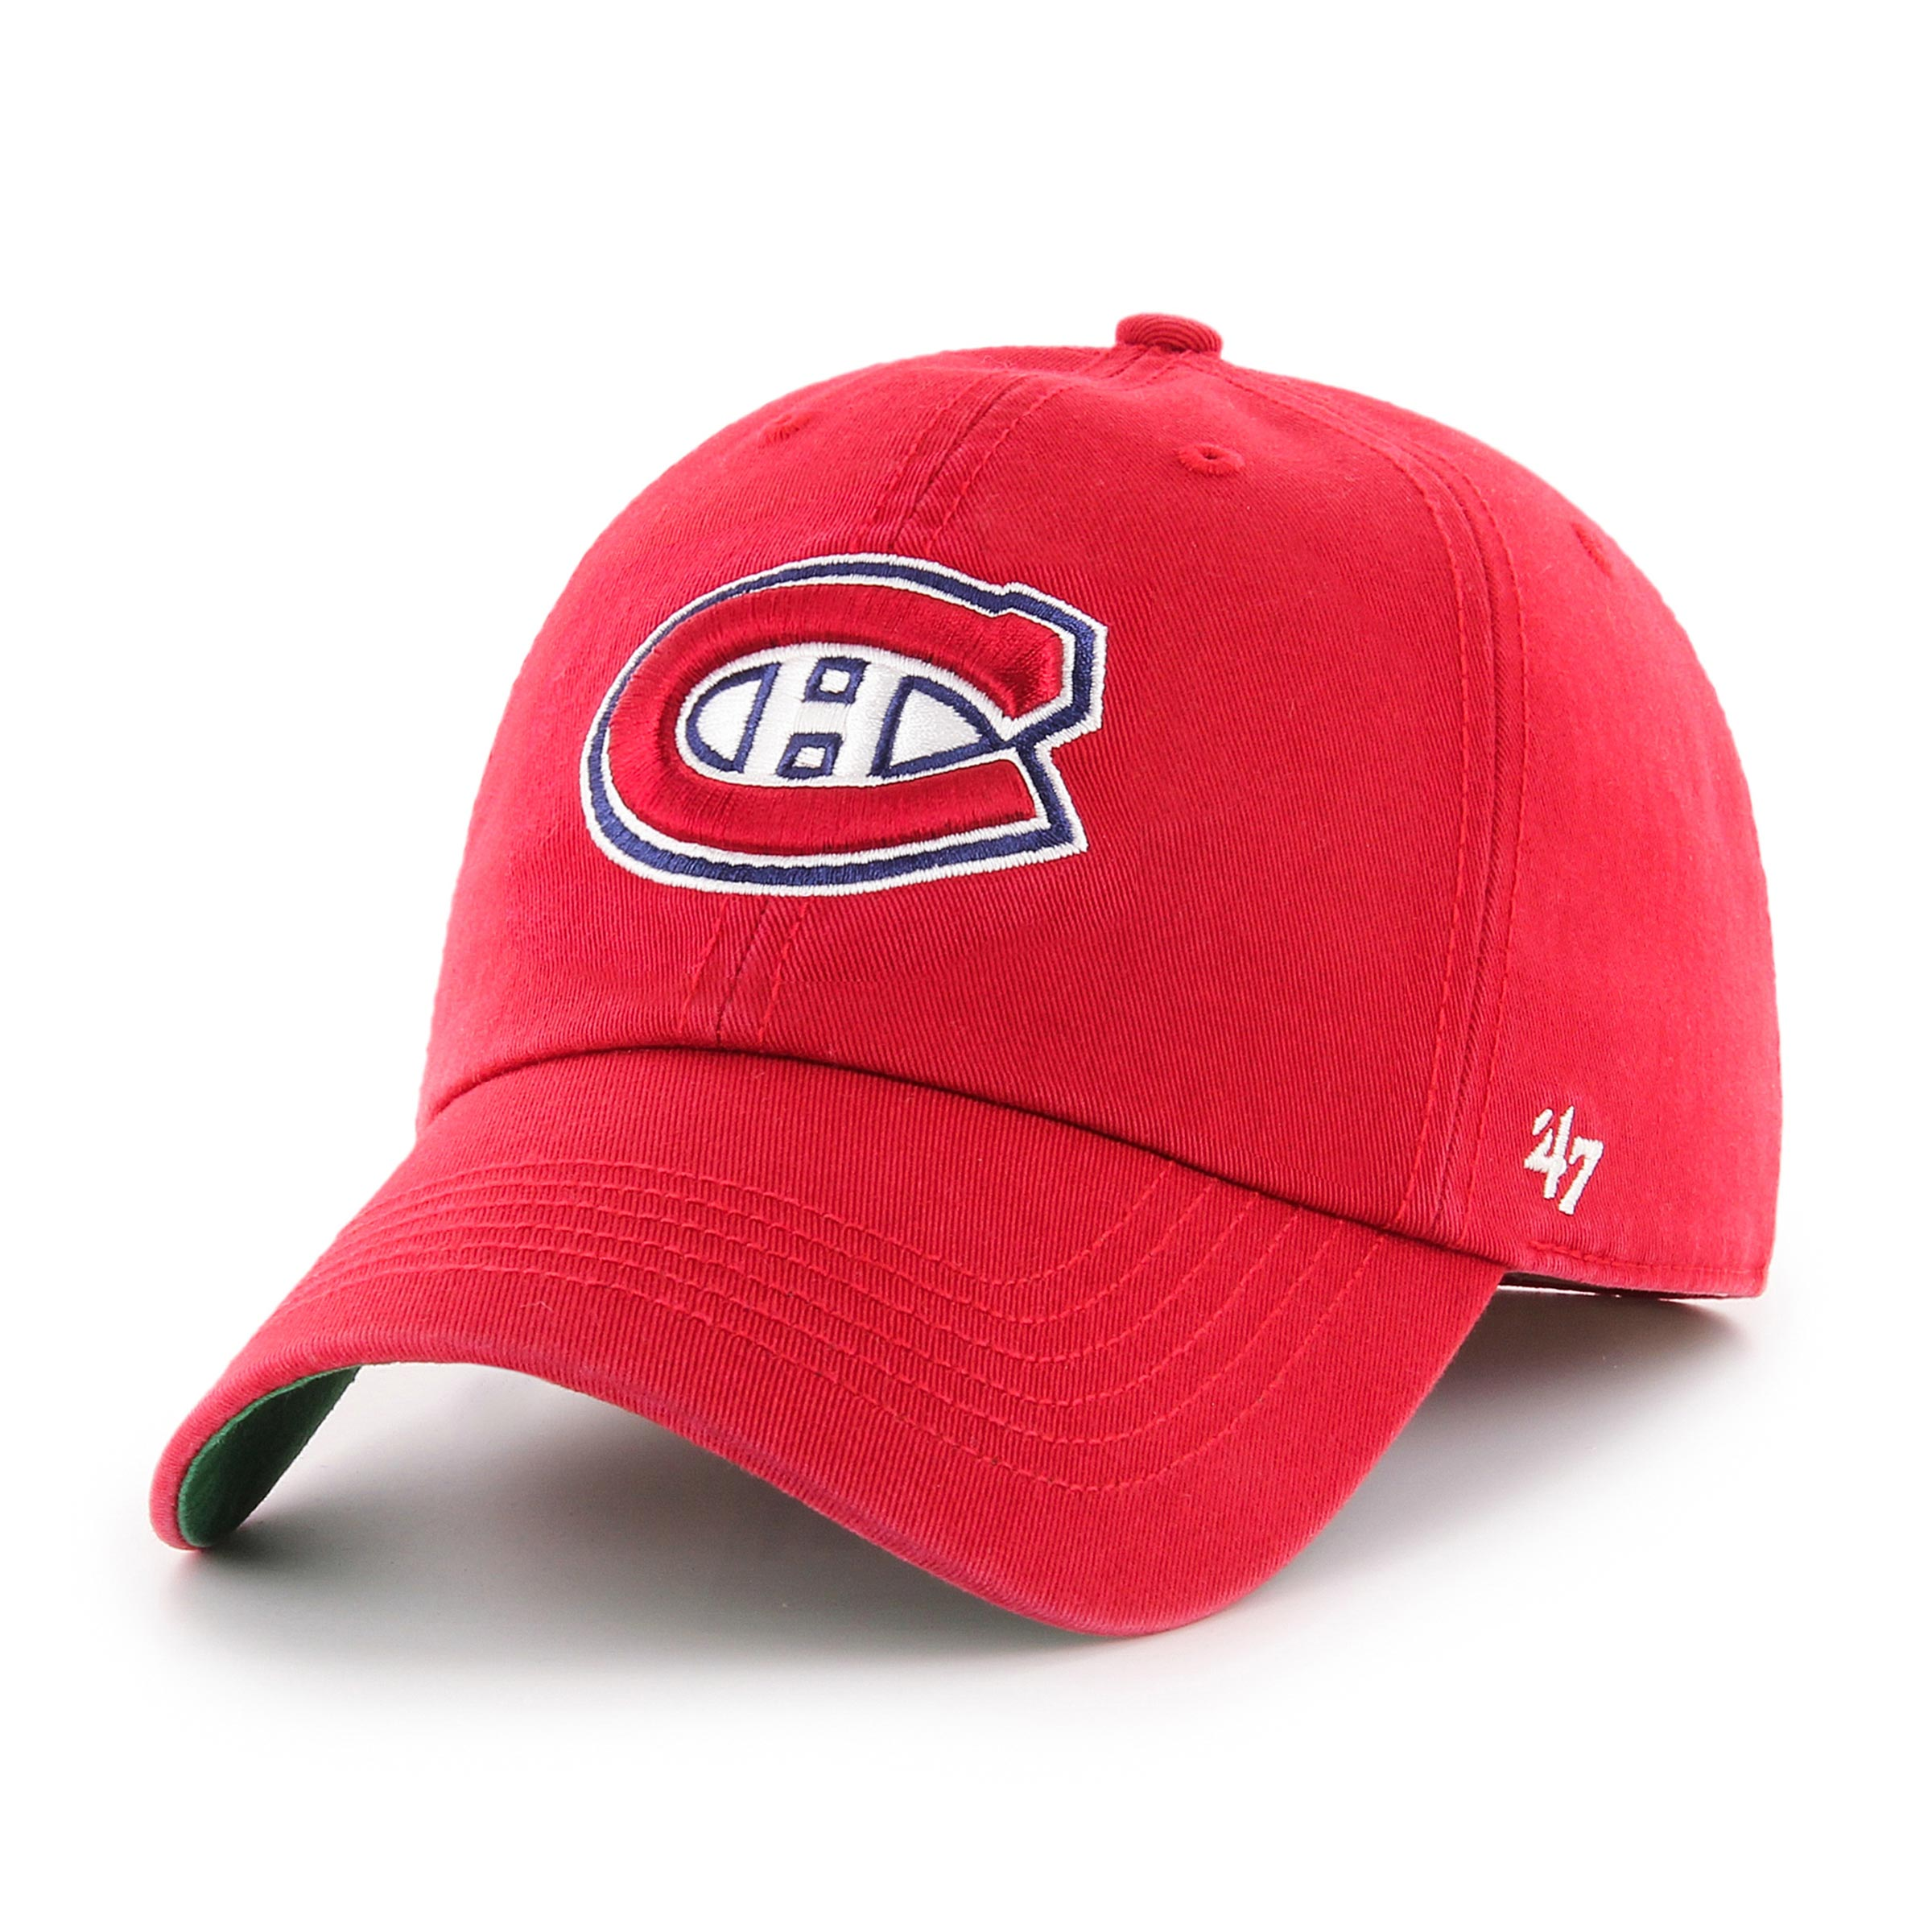 wholesale dealer c64ae 5b4fb ... where to buy montreal canadiens nhl 47 franchise fitted cap red 648d8  4bef4